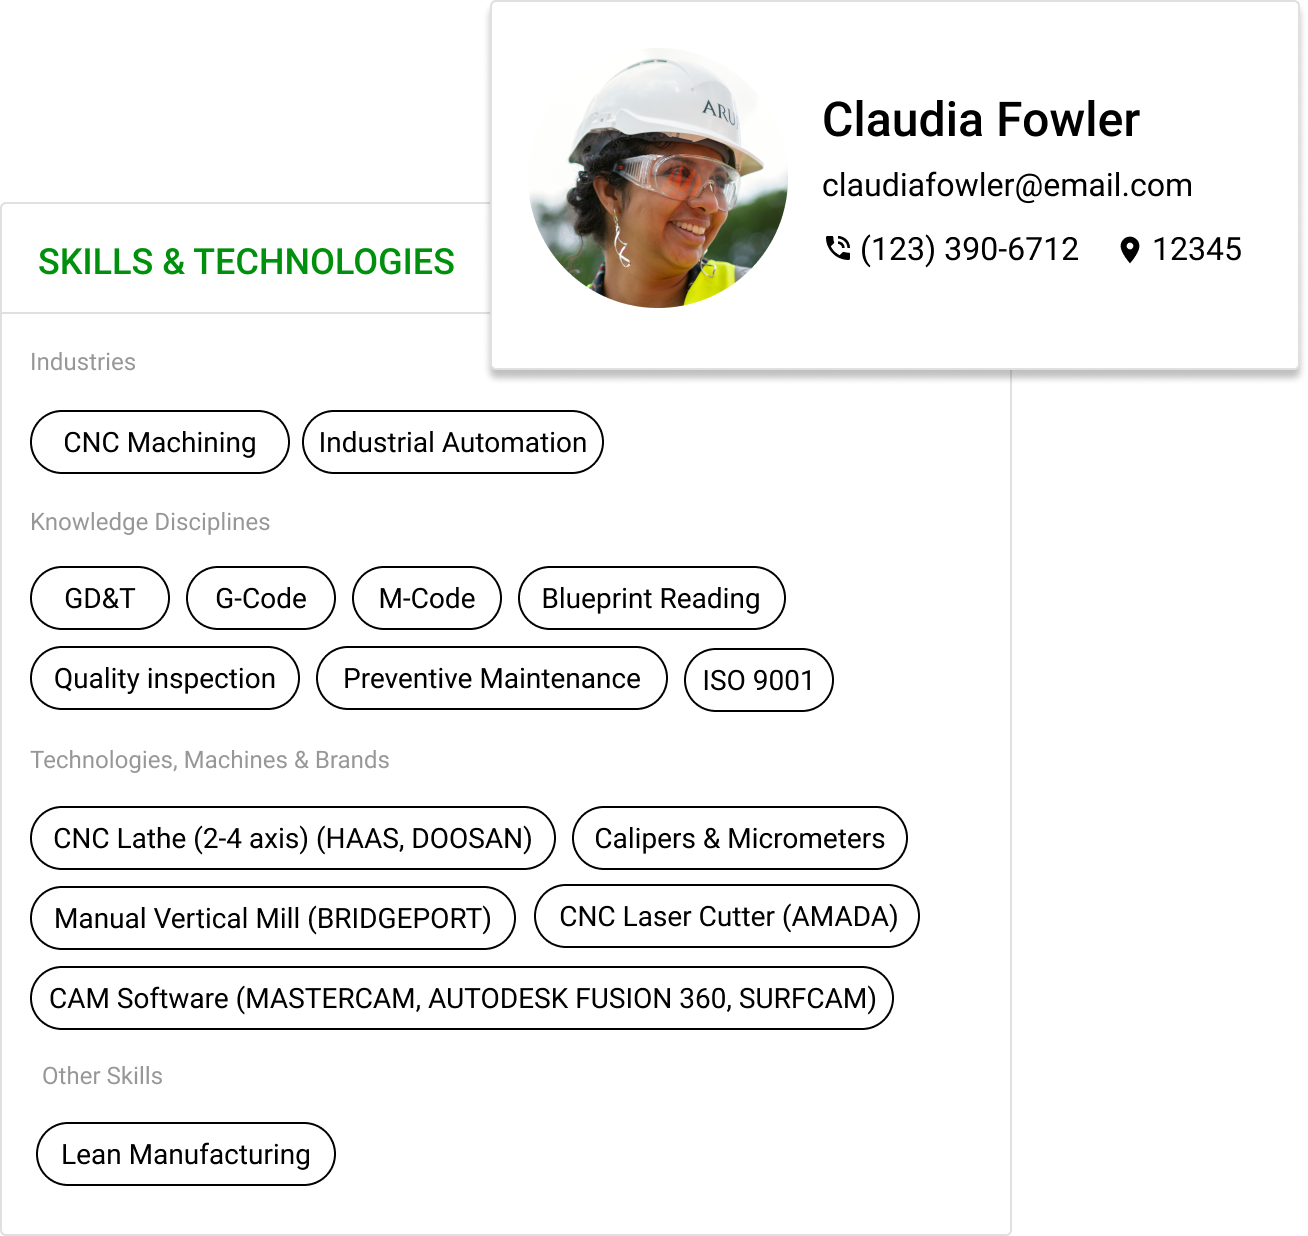 FactoryFix's easy to view professional profiles help your skills stand out.